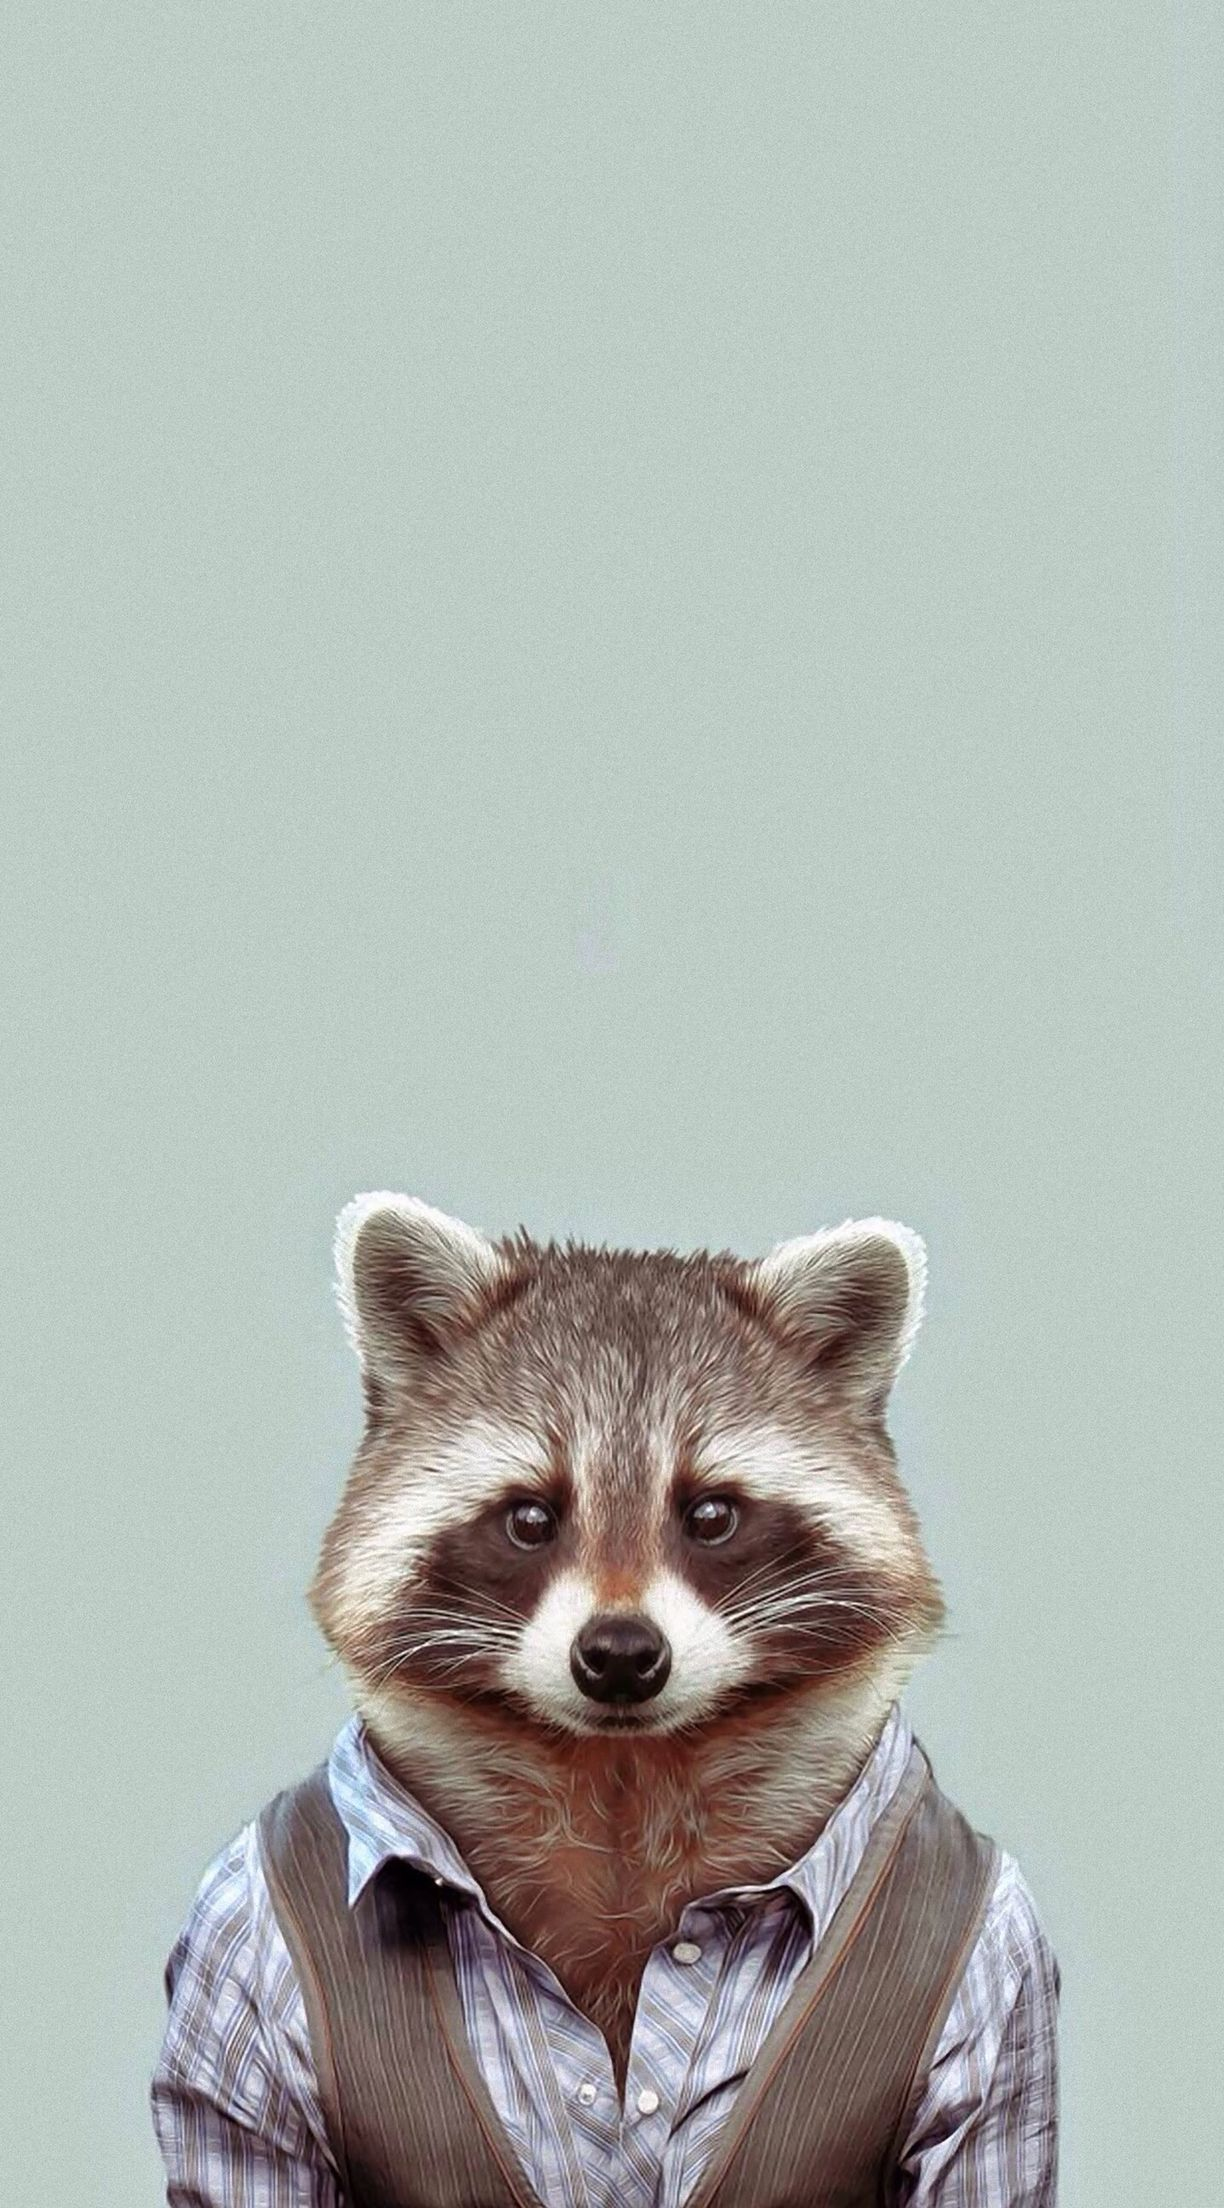 3bbc807683 Raccoon wearing clothes art Best Photo Frames